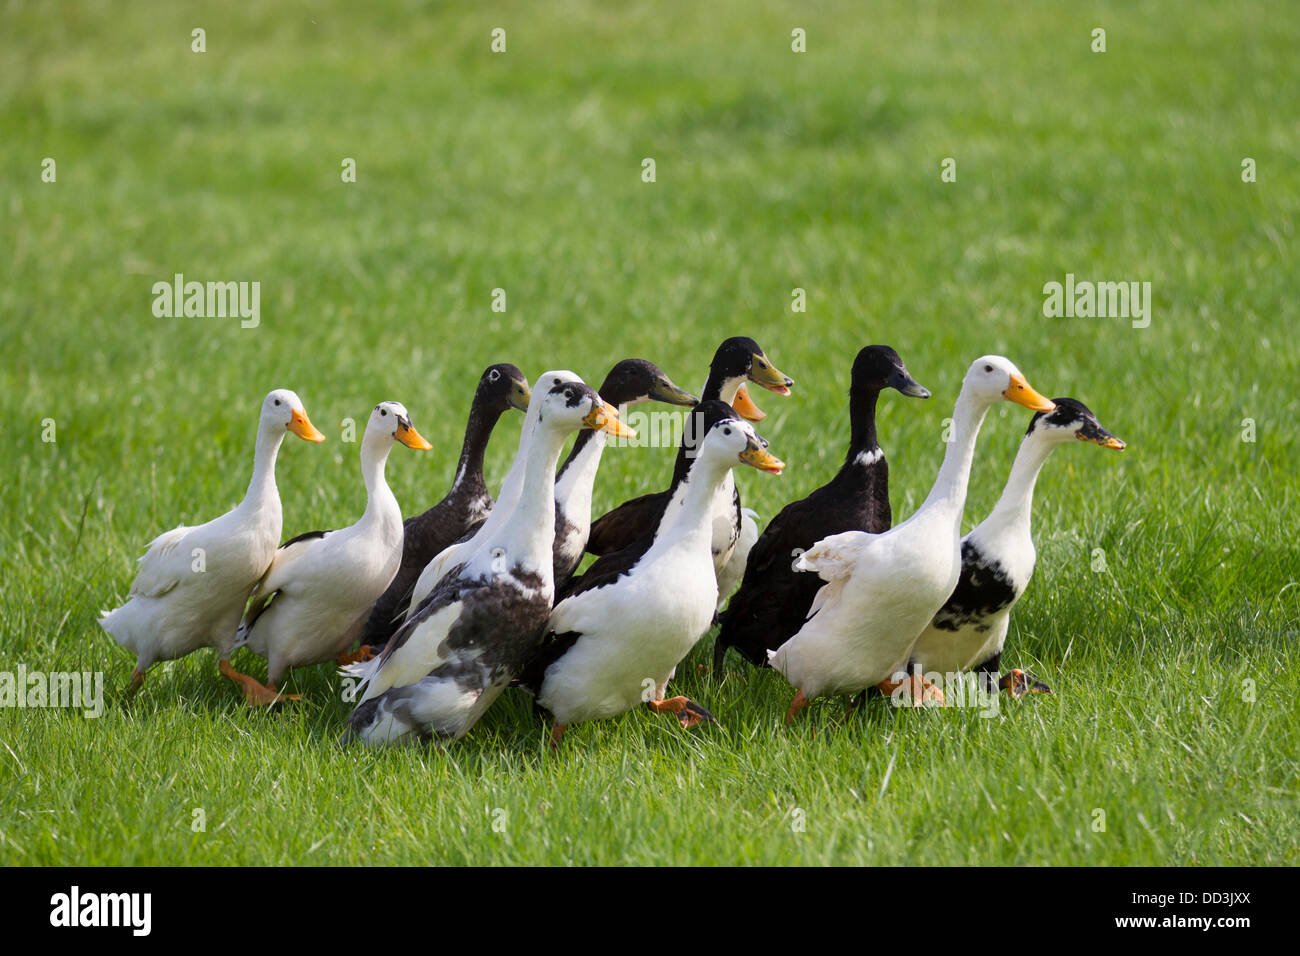 Cheshire Game & Country Fair, UK,  Aug 24 to Aug 26, 2013. Indian domestic geese, waterfowl-ducks, runners waddling - Stock Image